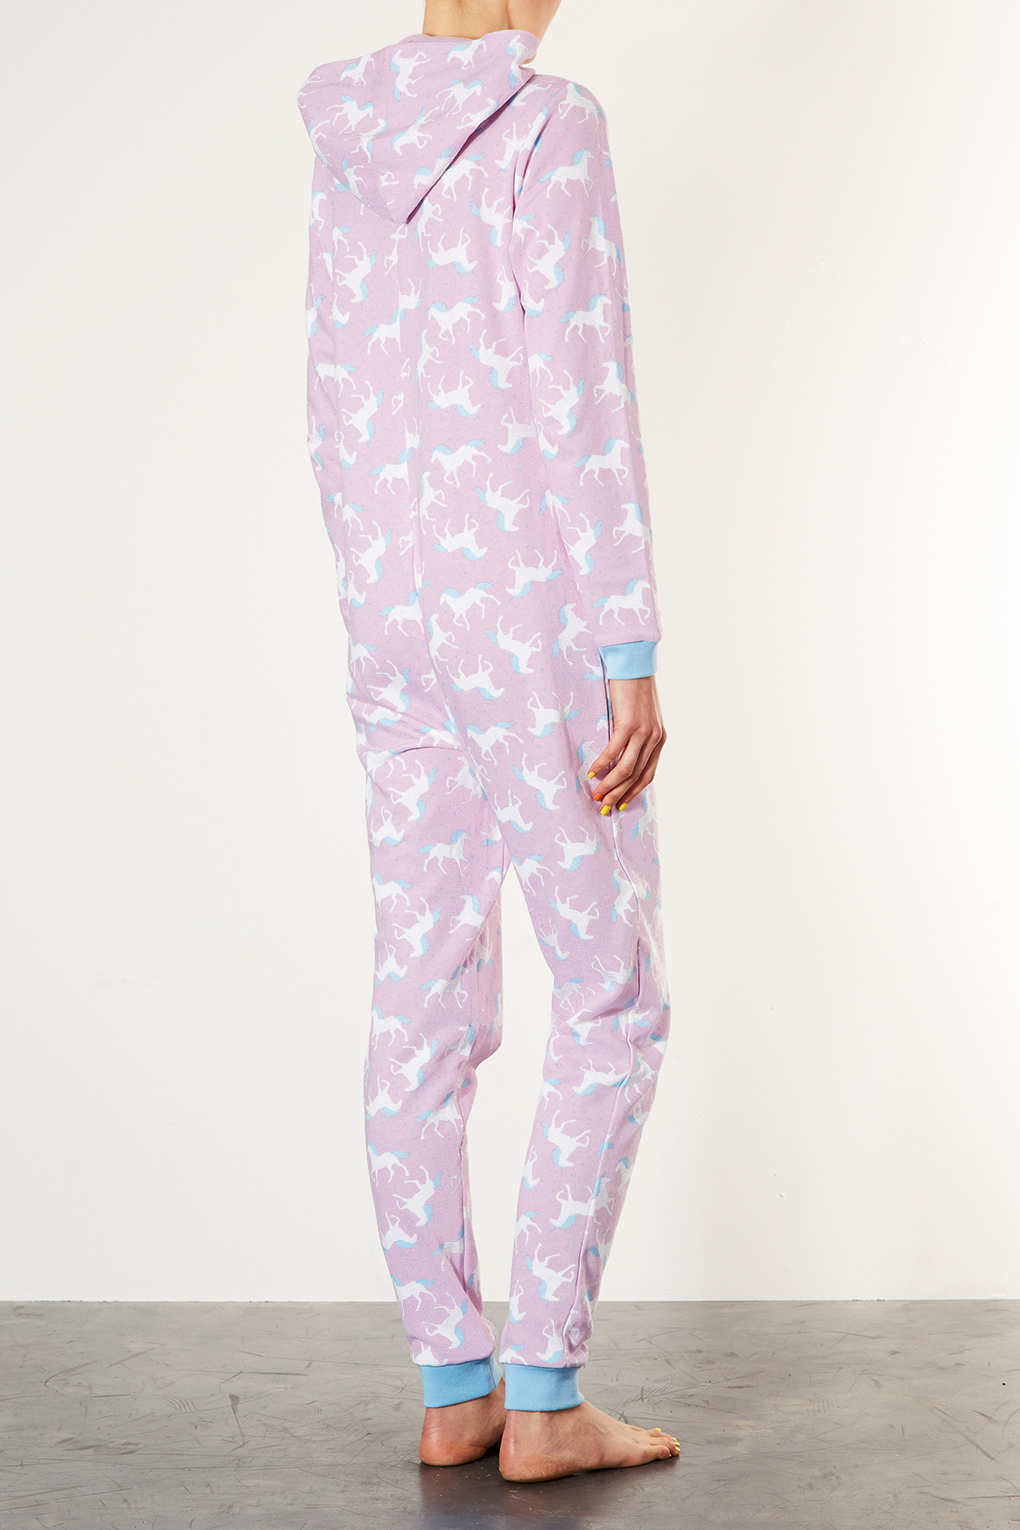 Pink Unicorn Onesie. Onesies Online is proud to offer you this pink unicorn onesie which is made of highest quality fleece. It is available in four sizes which is S (Small), M (Medium), L (Large) and XL (Extra Large). We offer various types of animal onesies Australia and global consumers will surely love.